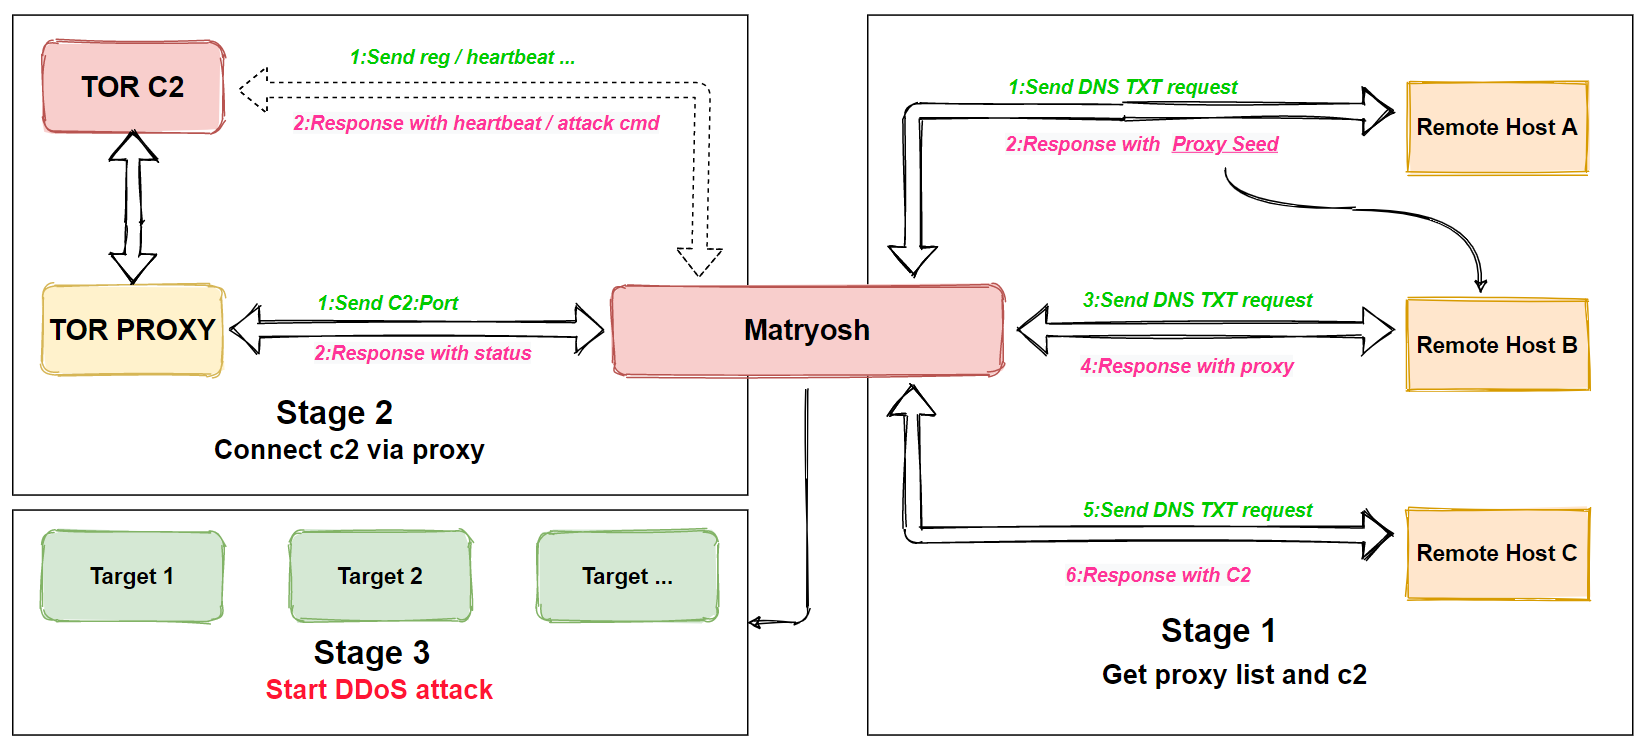 New botnet targets Android devices to facilitate DDoS attacks - SiliconANGLE